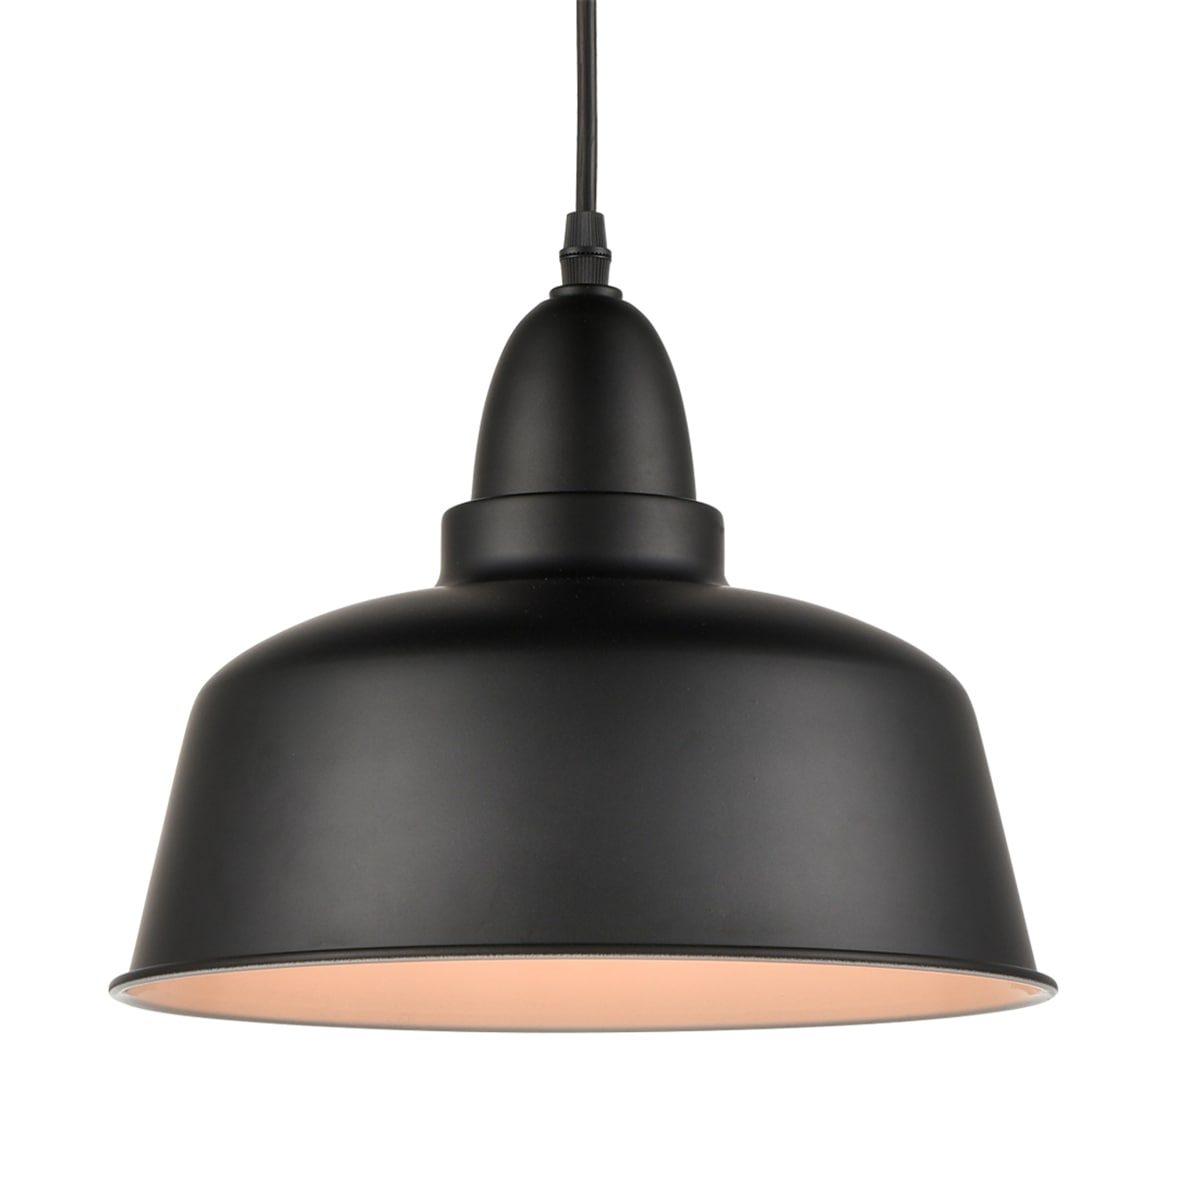 Matte Black Industrial Metal Pendant Lights Kitchen Island Lighting